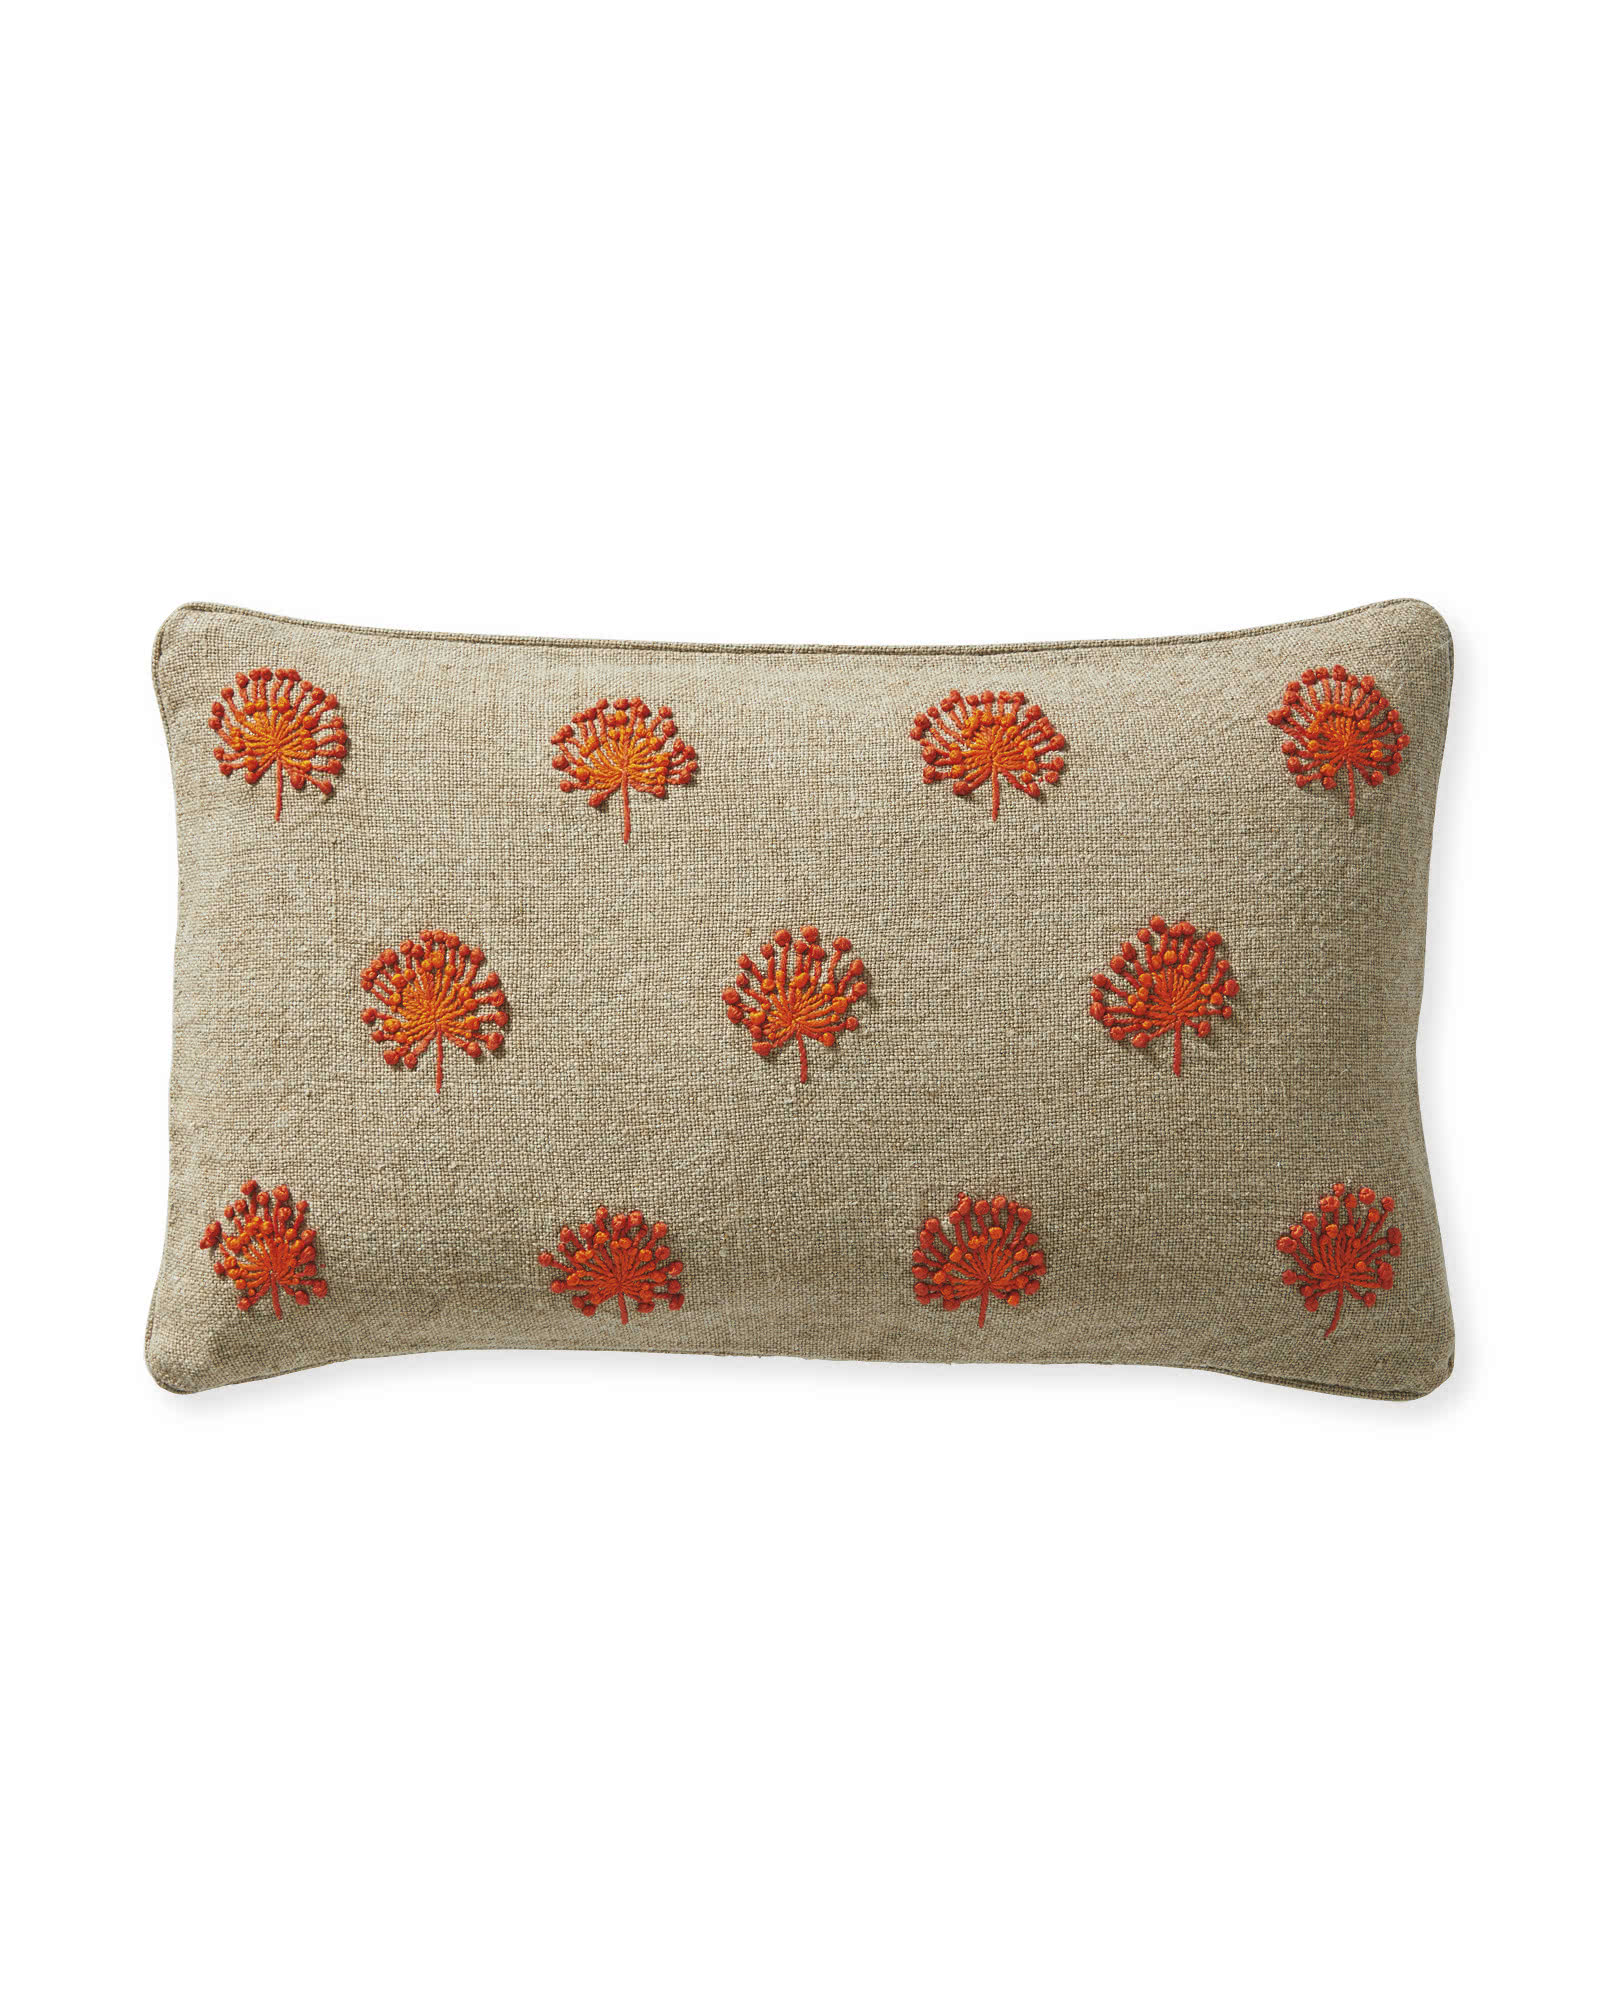 Dandelion Embroidered Pillow Cover, Papaya